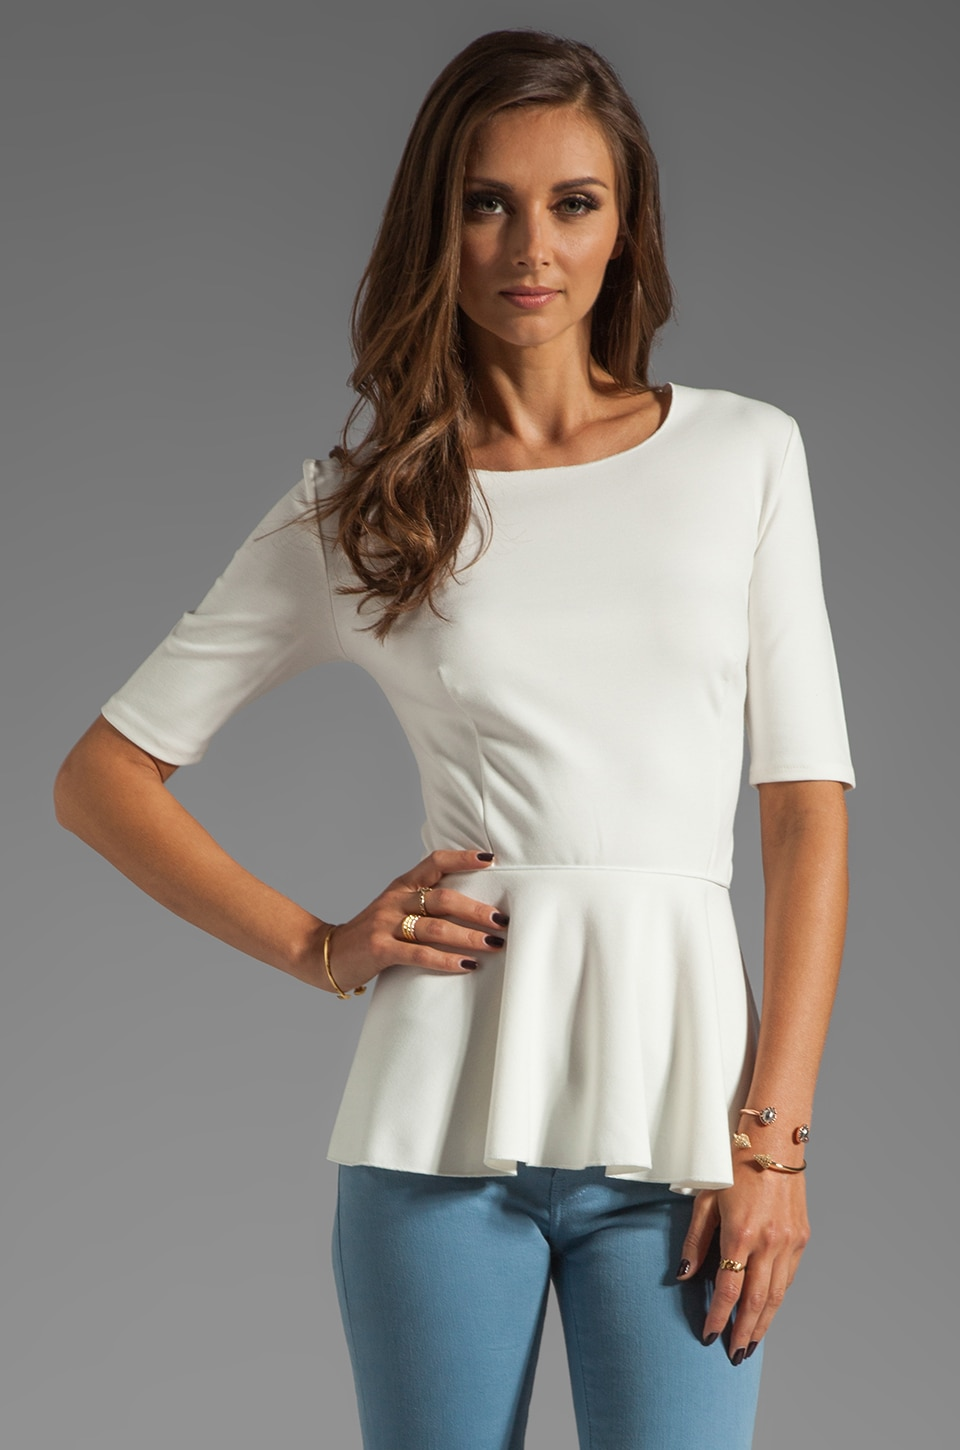 Central Park West Newport Peplum Top in Ivory